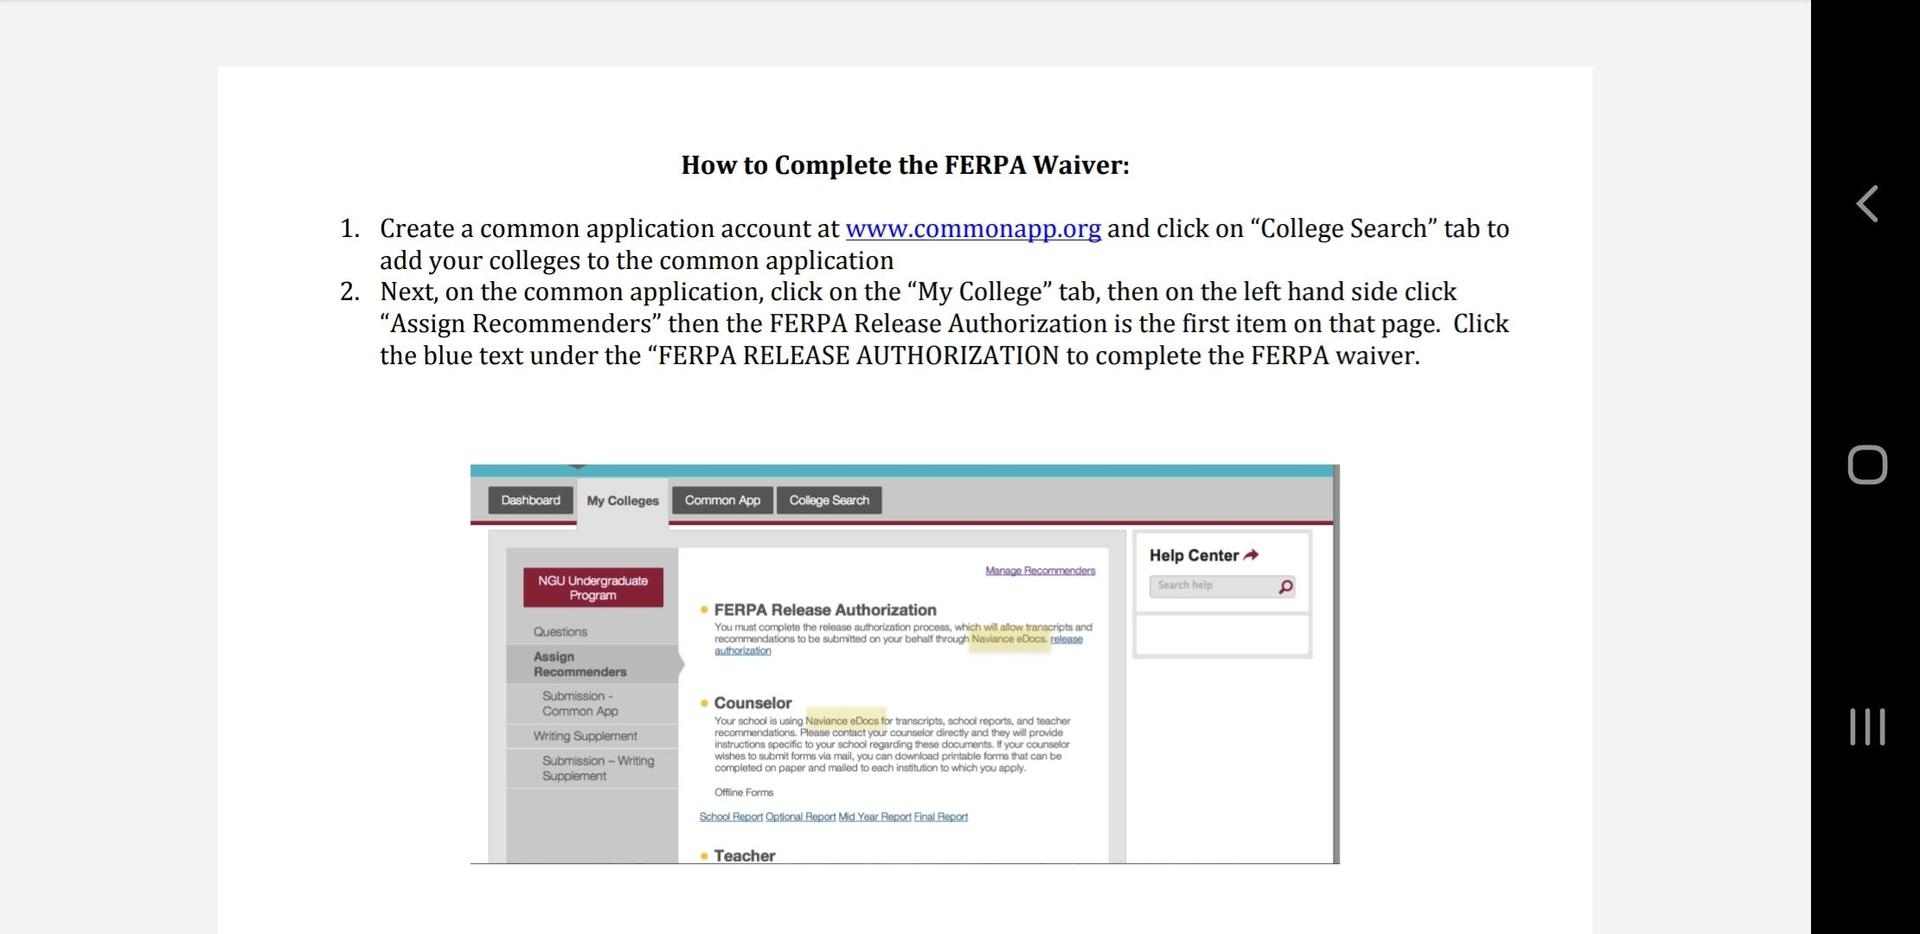 How to Complete the FERPA Waiver